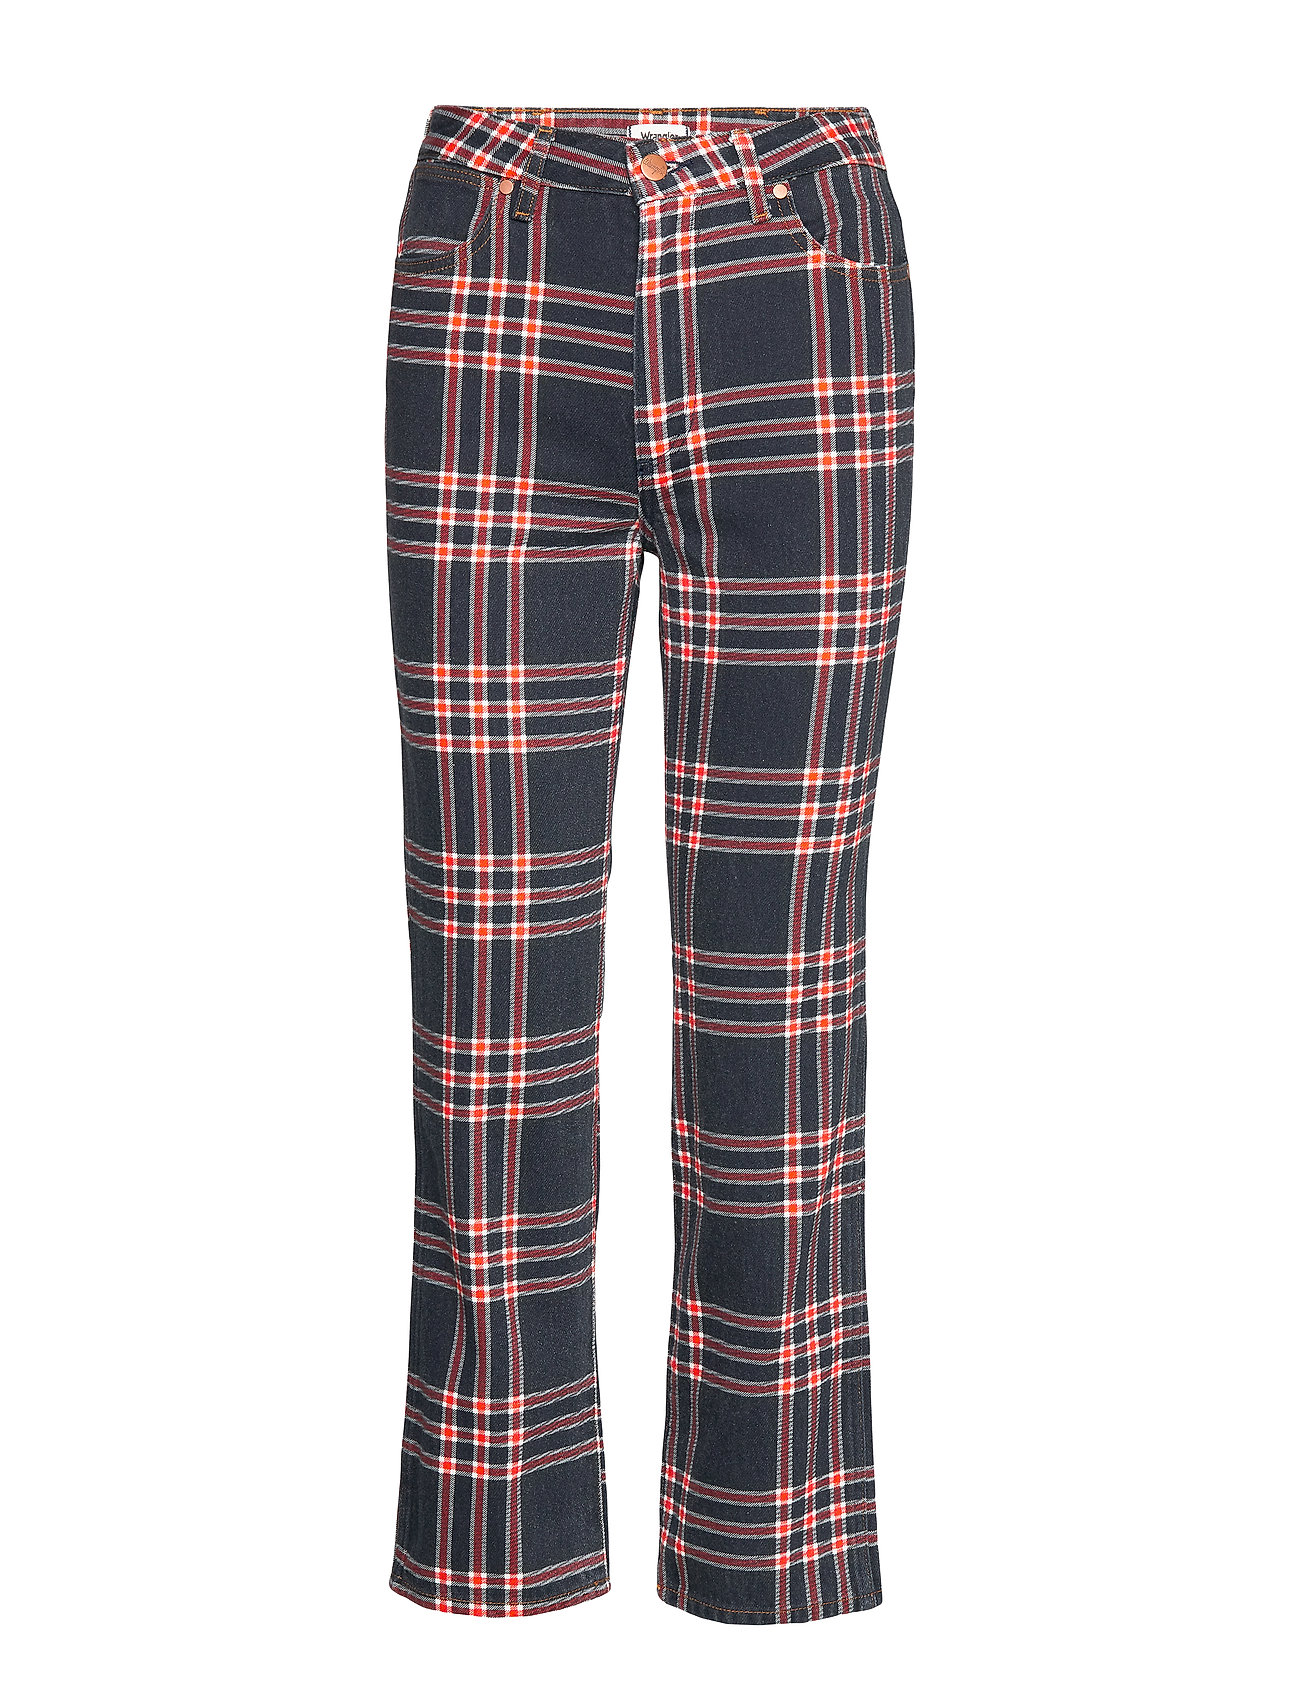 Wrangler THE RETRO INDIGO CHECK - INDIGO CHECK